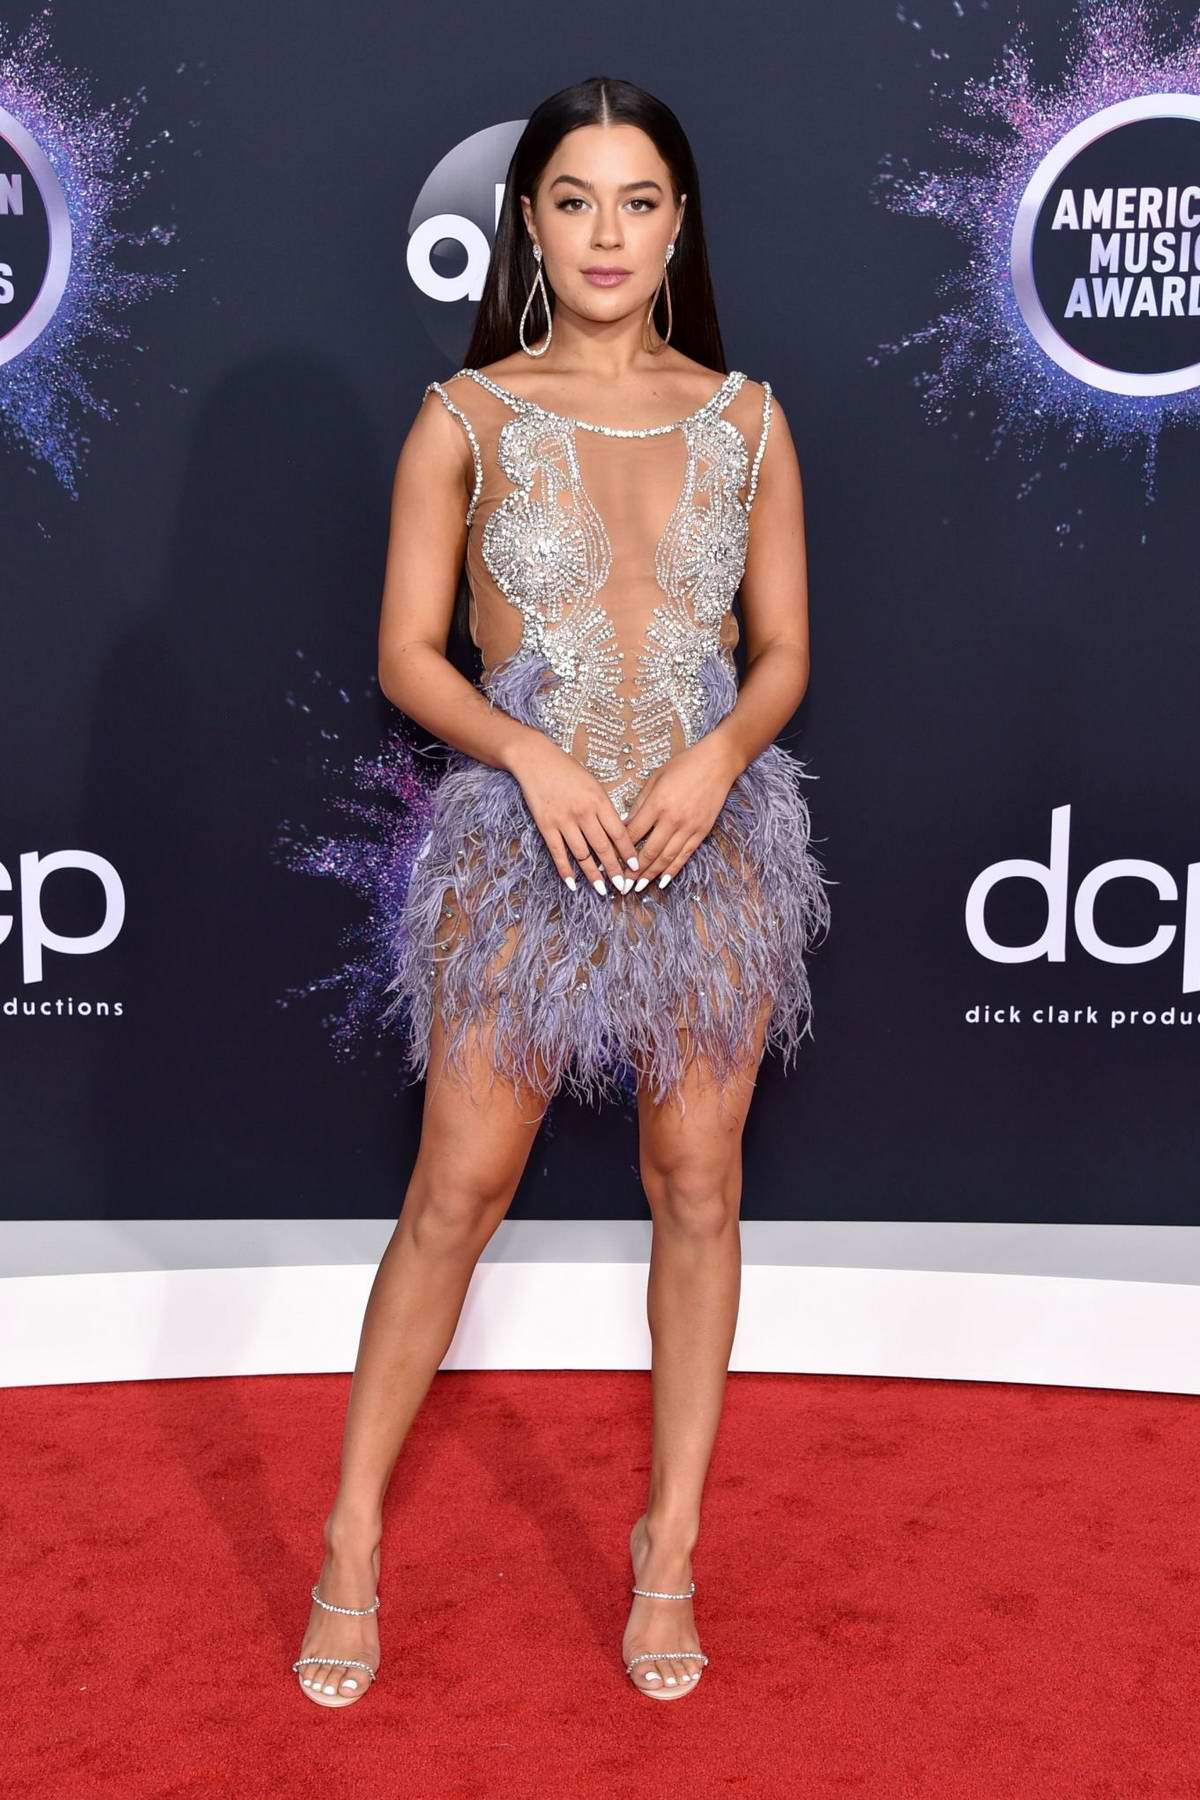 Tessa Brooks attends the 2019 American Music Awards at Microsoft Theater in Los Angeles